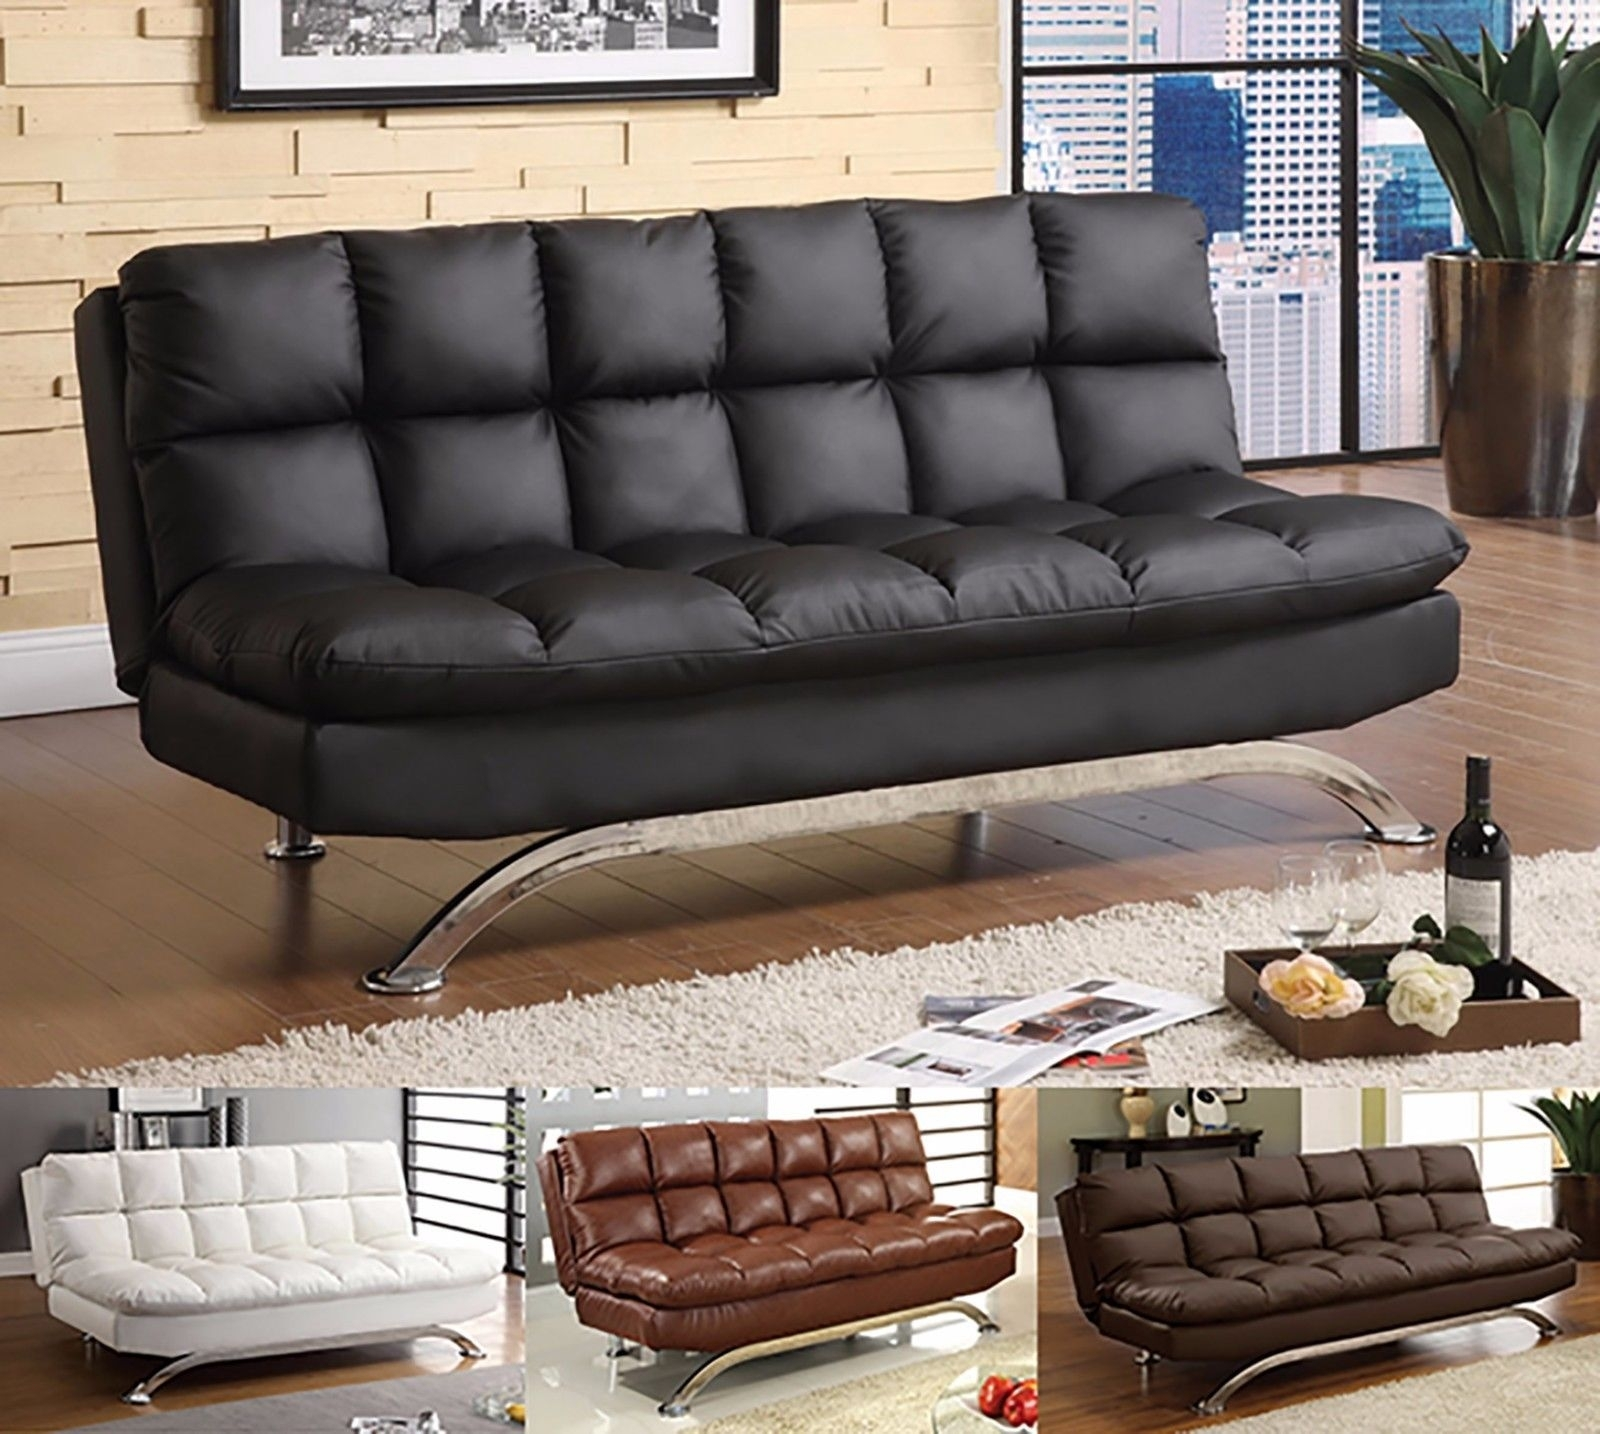 Furniture : Mattress Firm University Fold Out Couch Sleeper Inside Tuscaloosa Sectional Sofas (View 7 of 10)